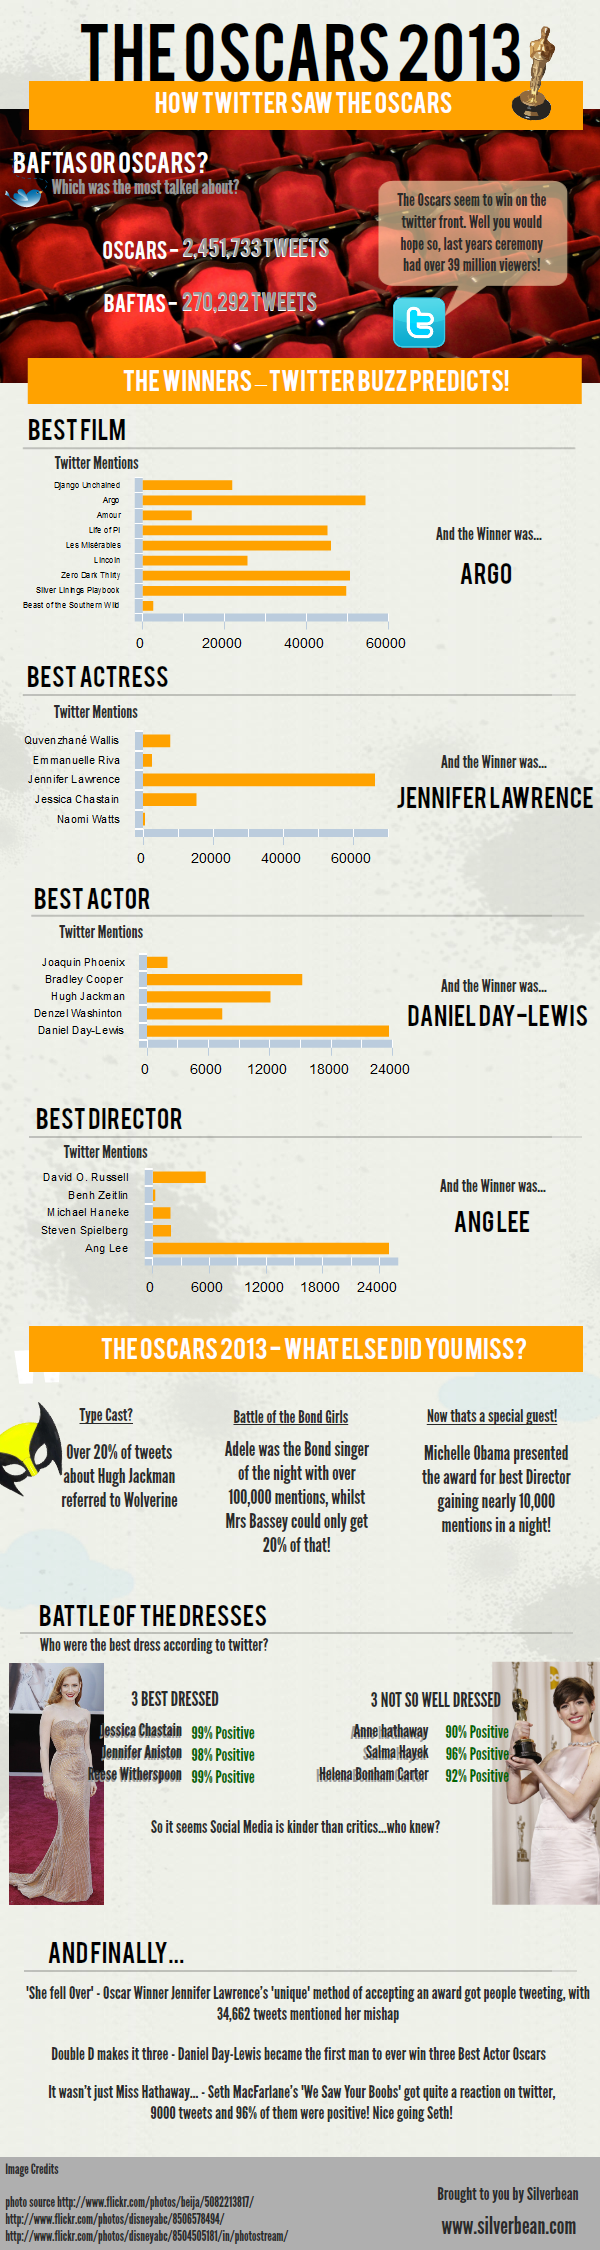 Oscars 2013 - How Twitter Saw the Oscars Infographic | Submit, Promote & Share Infographics | Loveinfographics.com